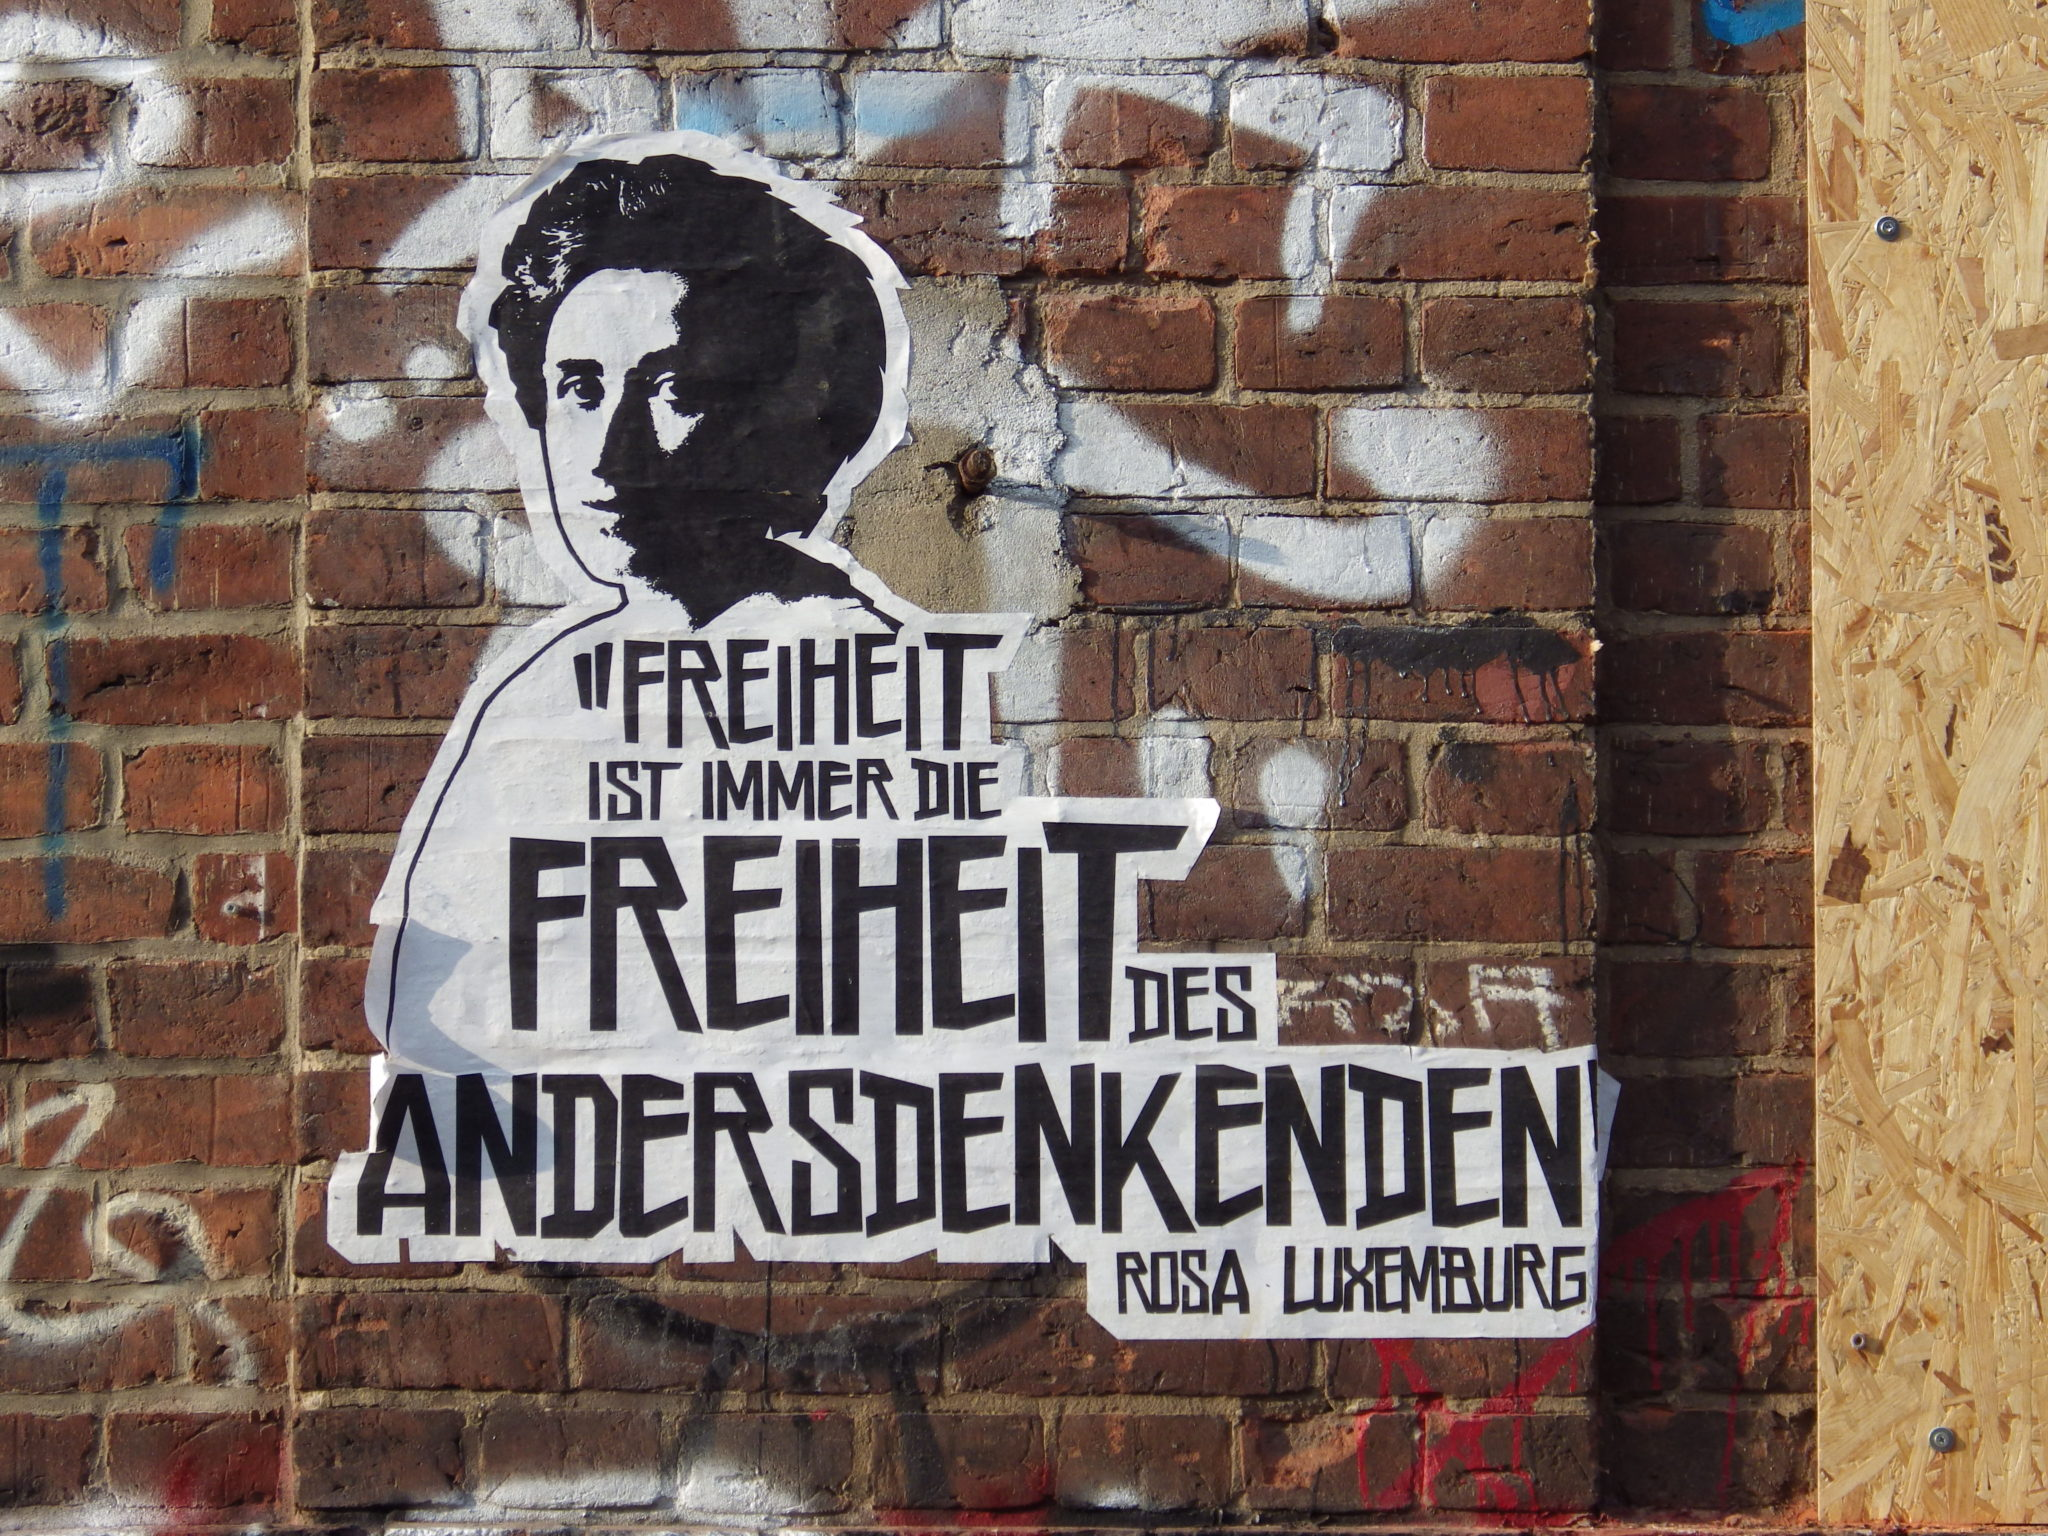 Rosa-Luxemburg-Paste-Up-in-Berlin